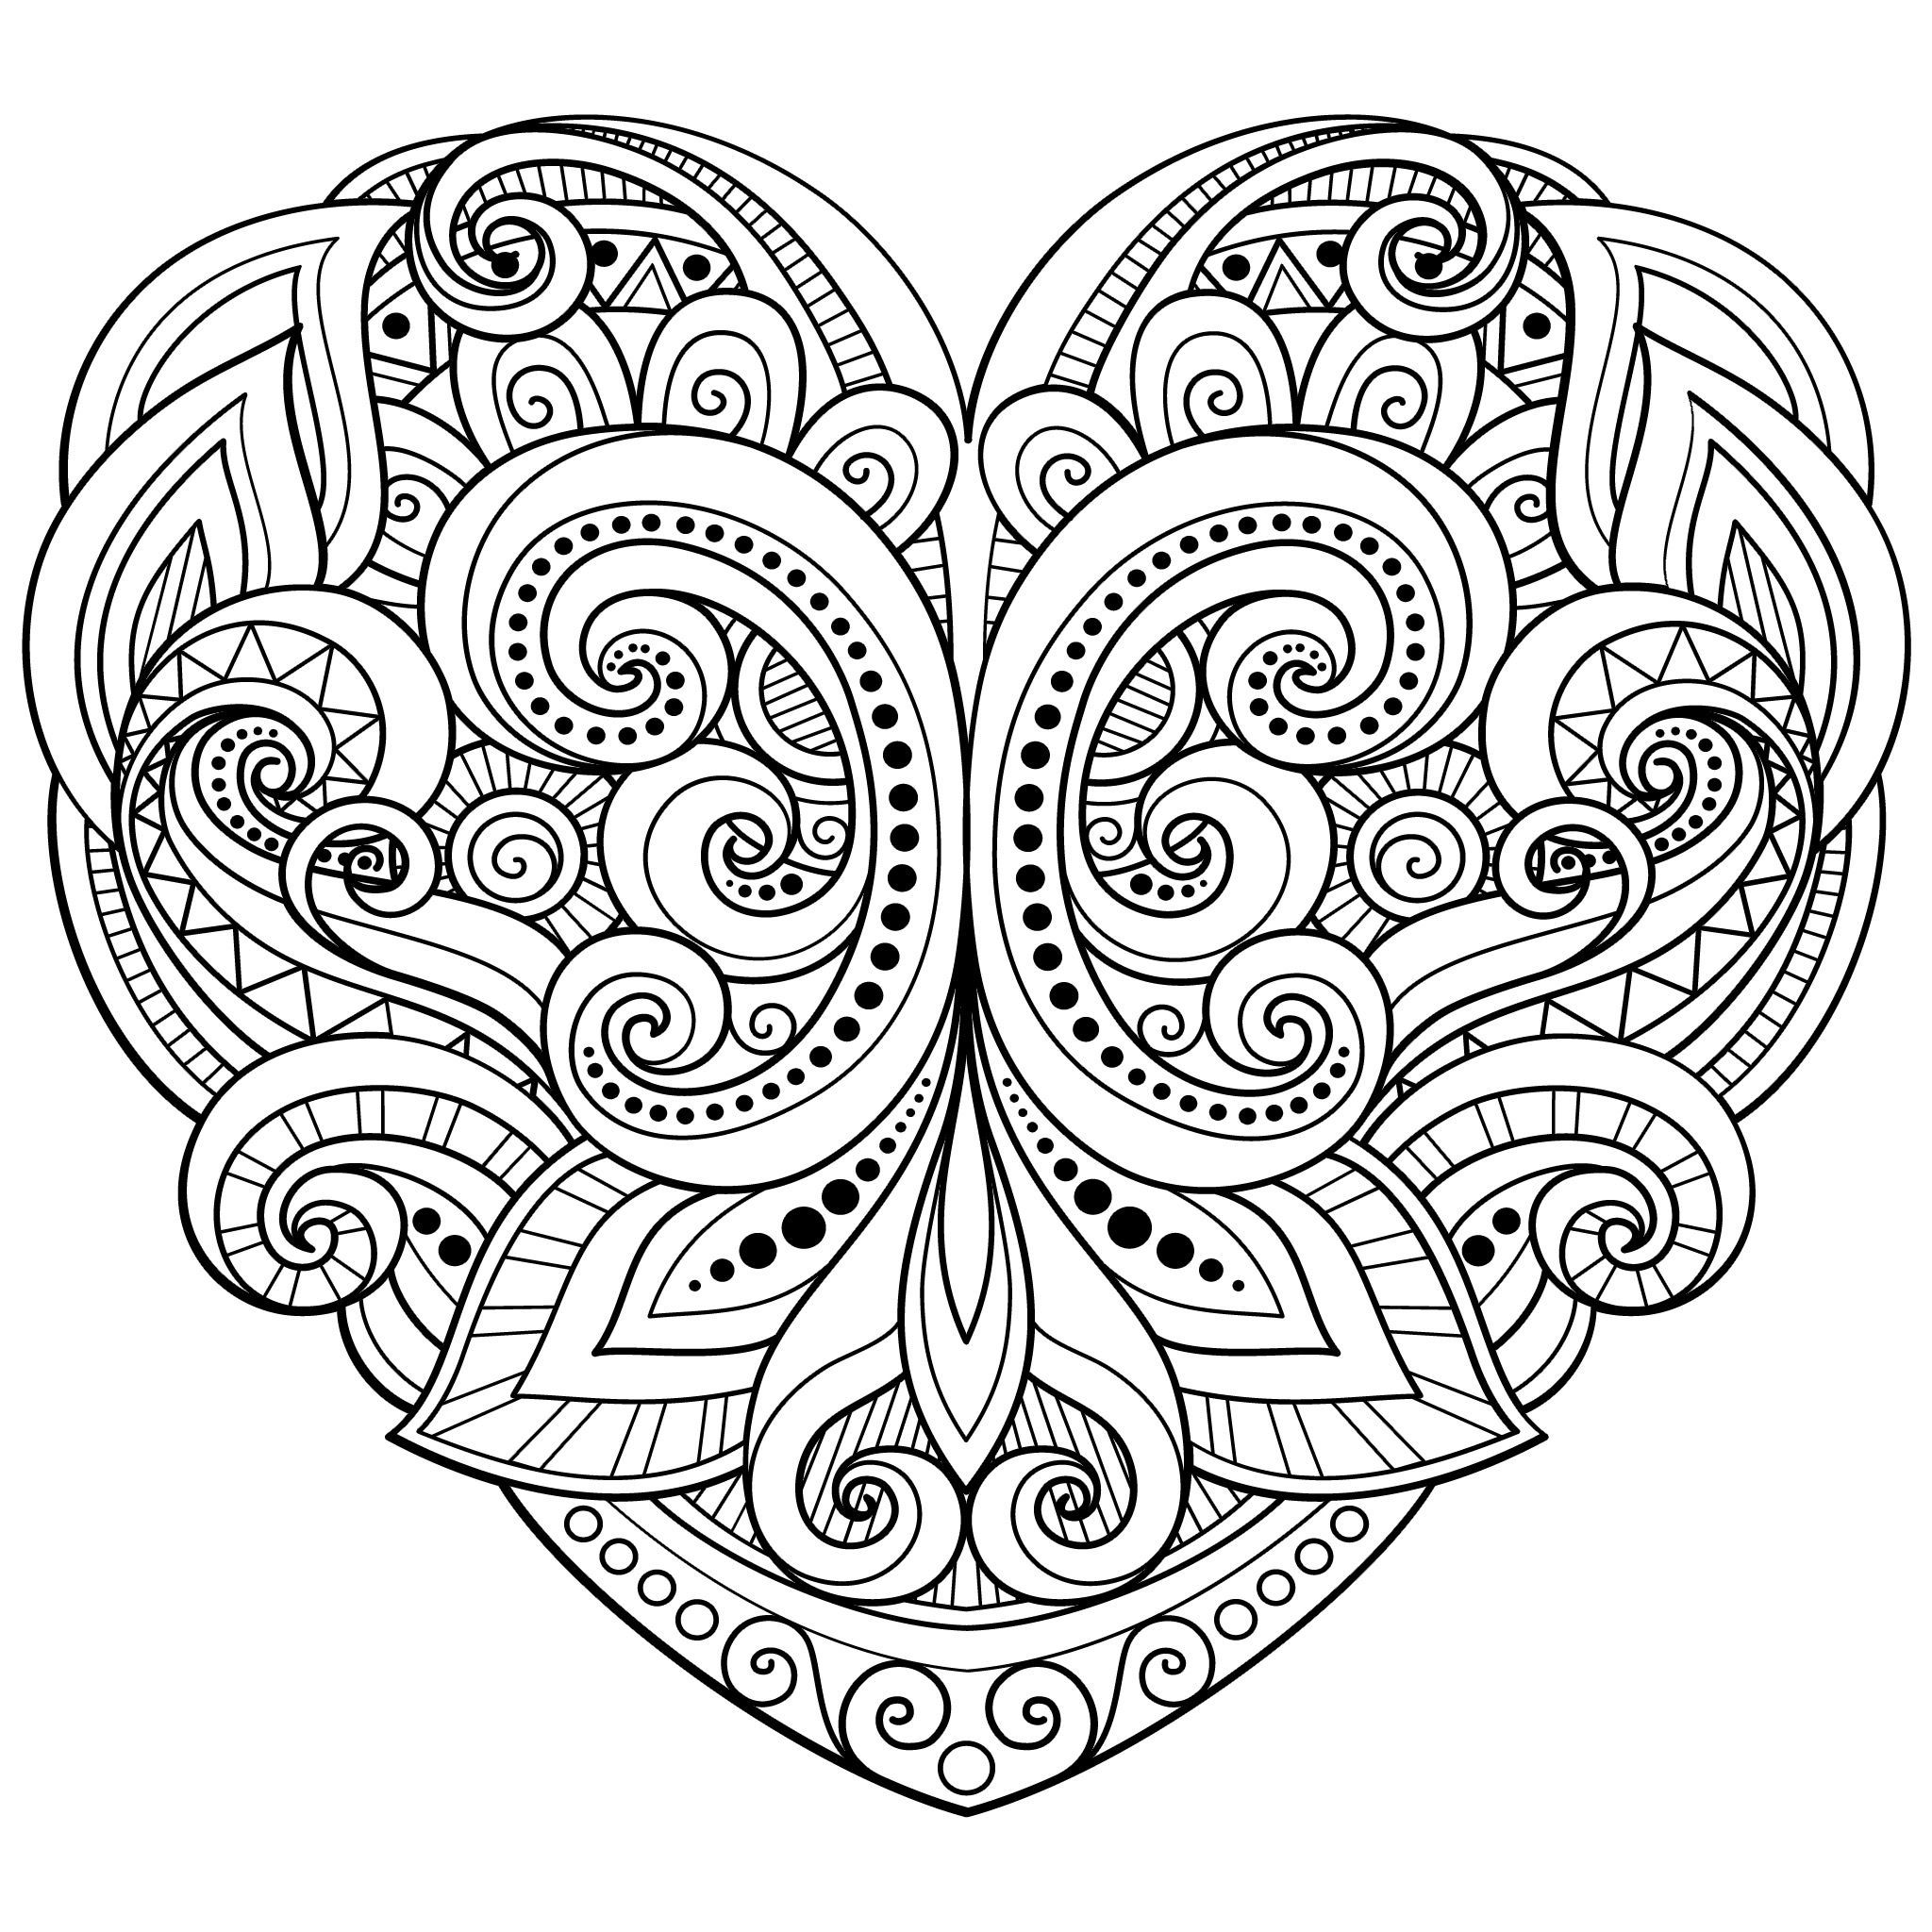 Heart Coloring Pages For Adults Heart Coloring Pages Love Coloring Pages Mandala Coloring Pages